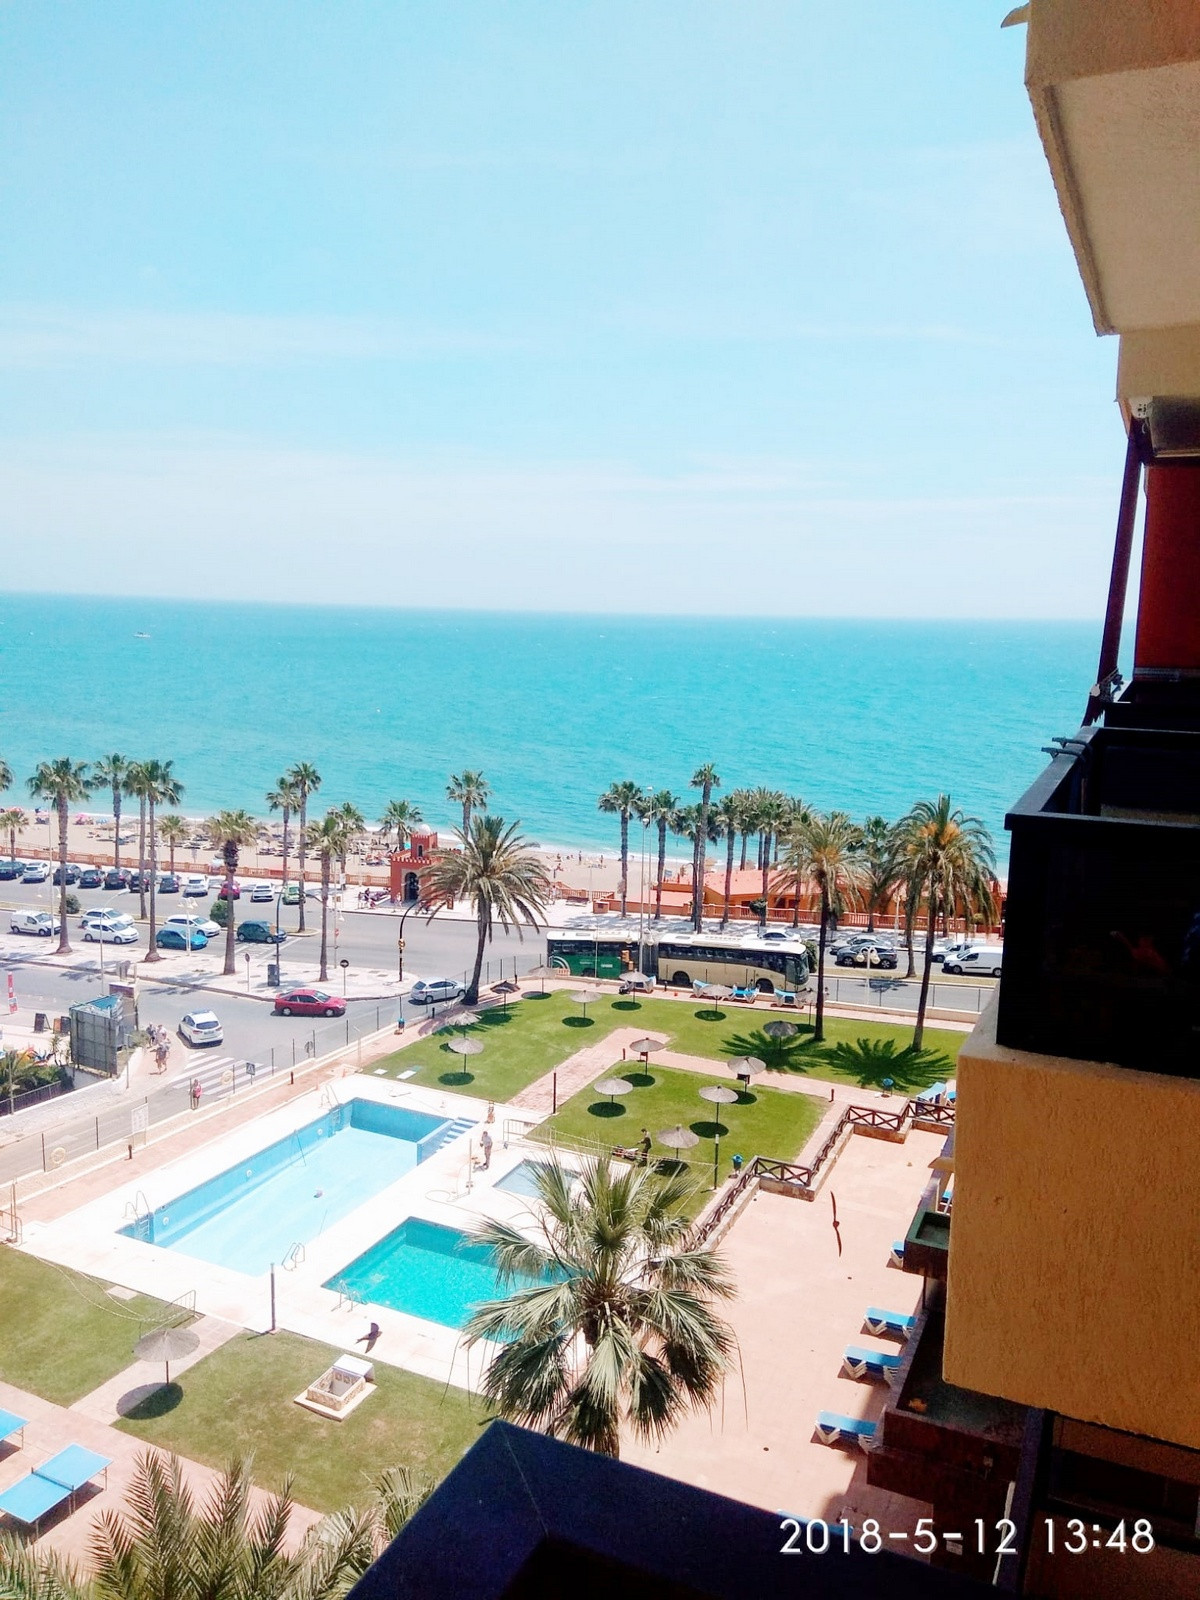 LOVELY 1 BED APARTMENT - FRONTLINE BEACH BENALMADENA This property consists in a lounge (with a doub, Spain